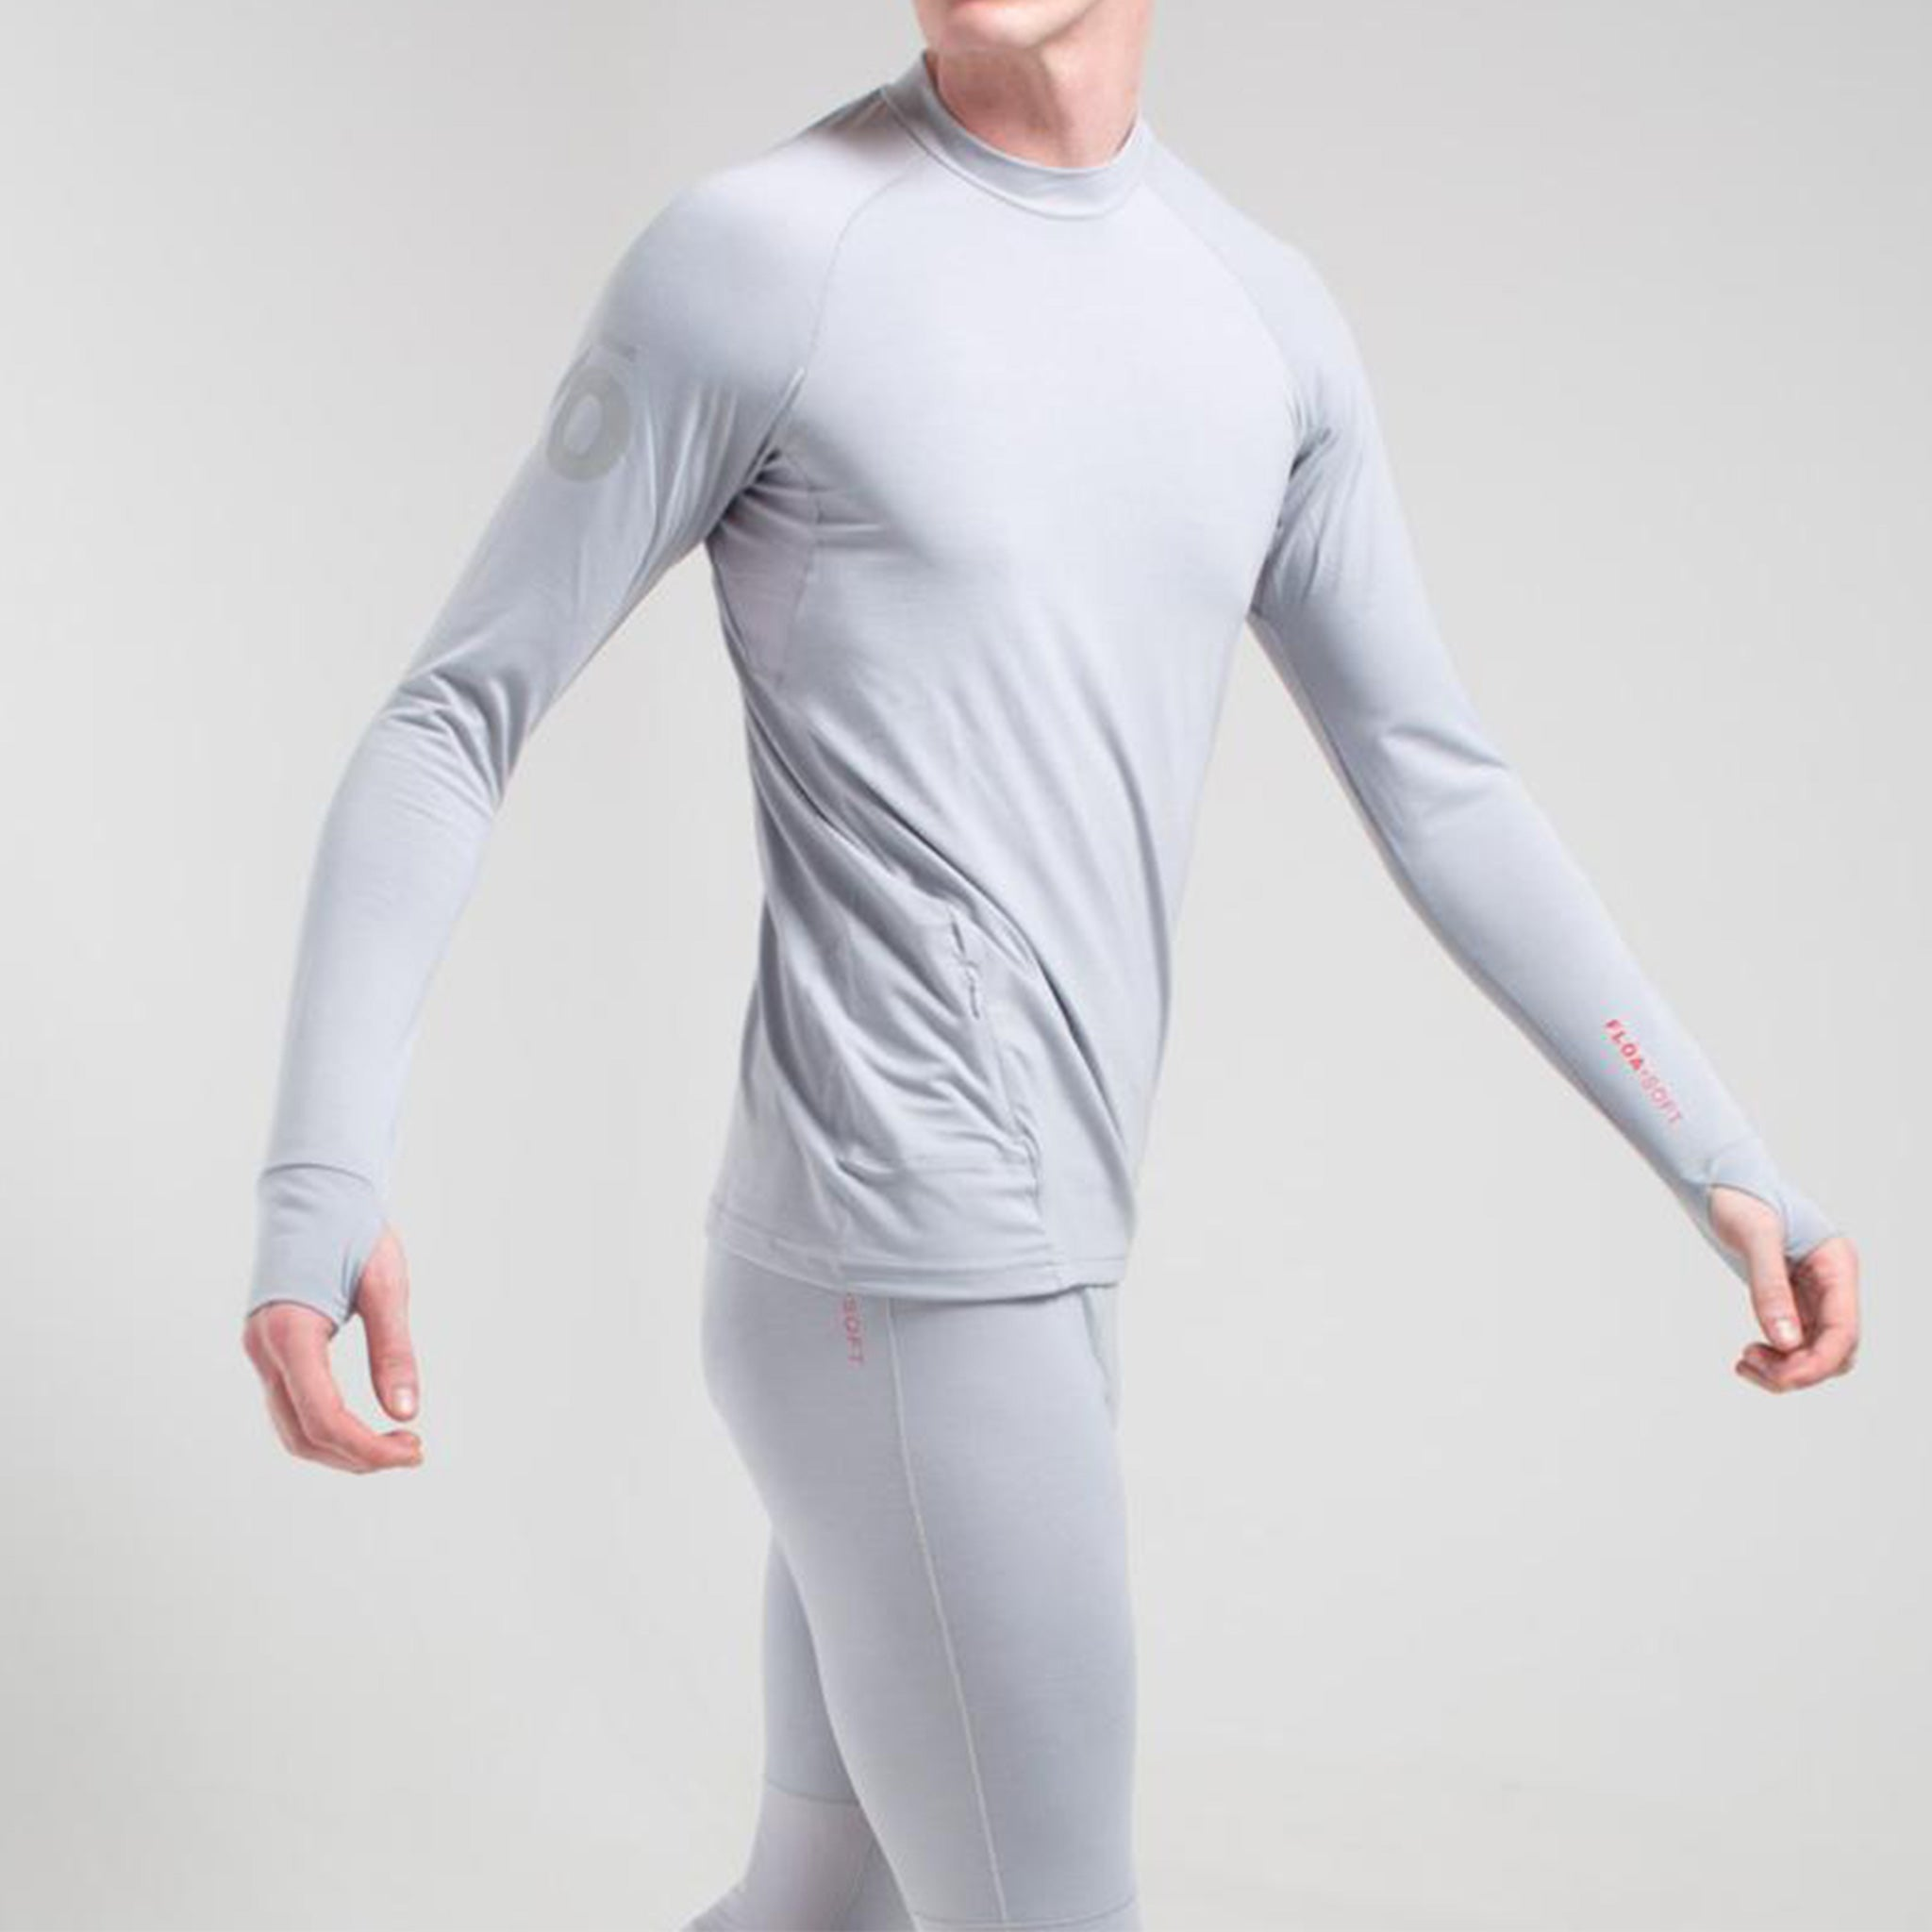 All Action Round Neck Base Layer Shirt